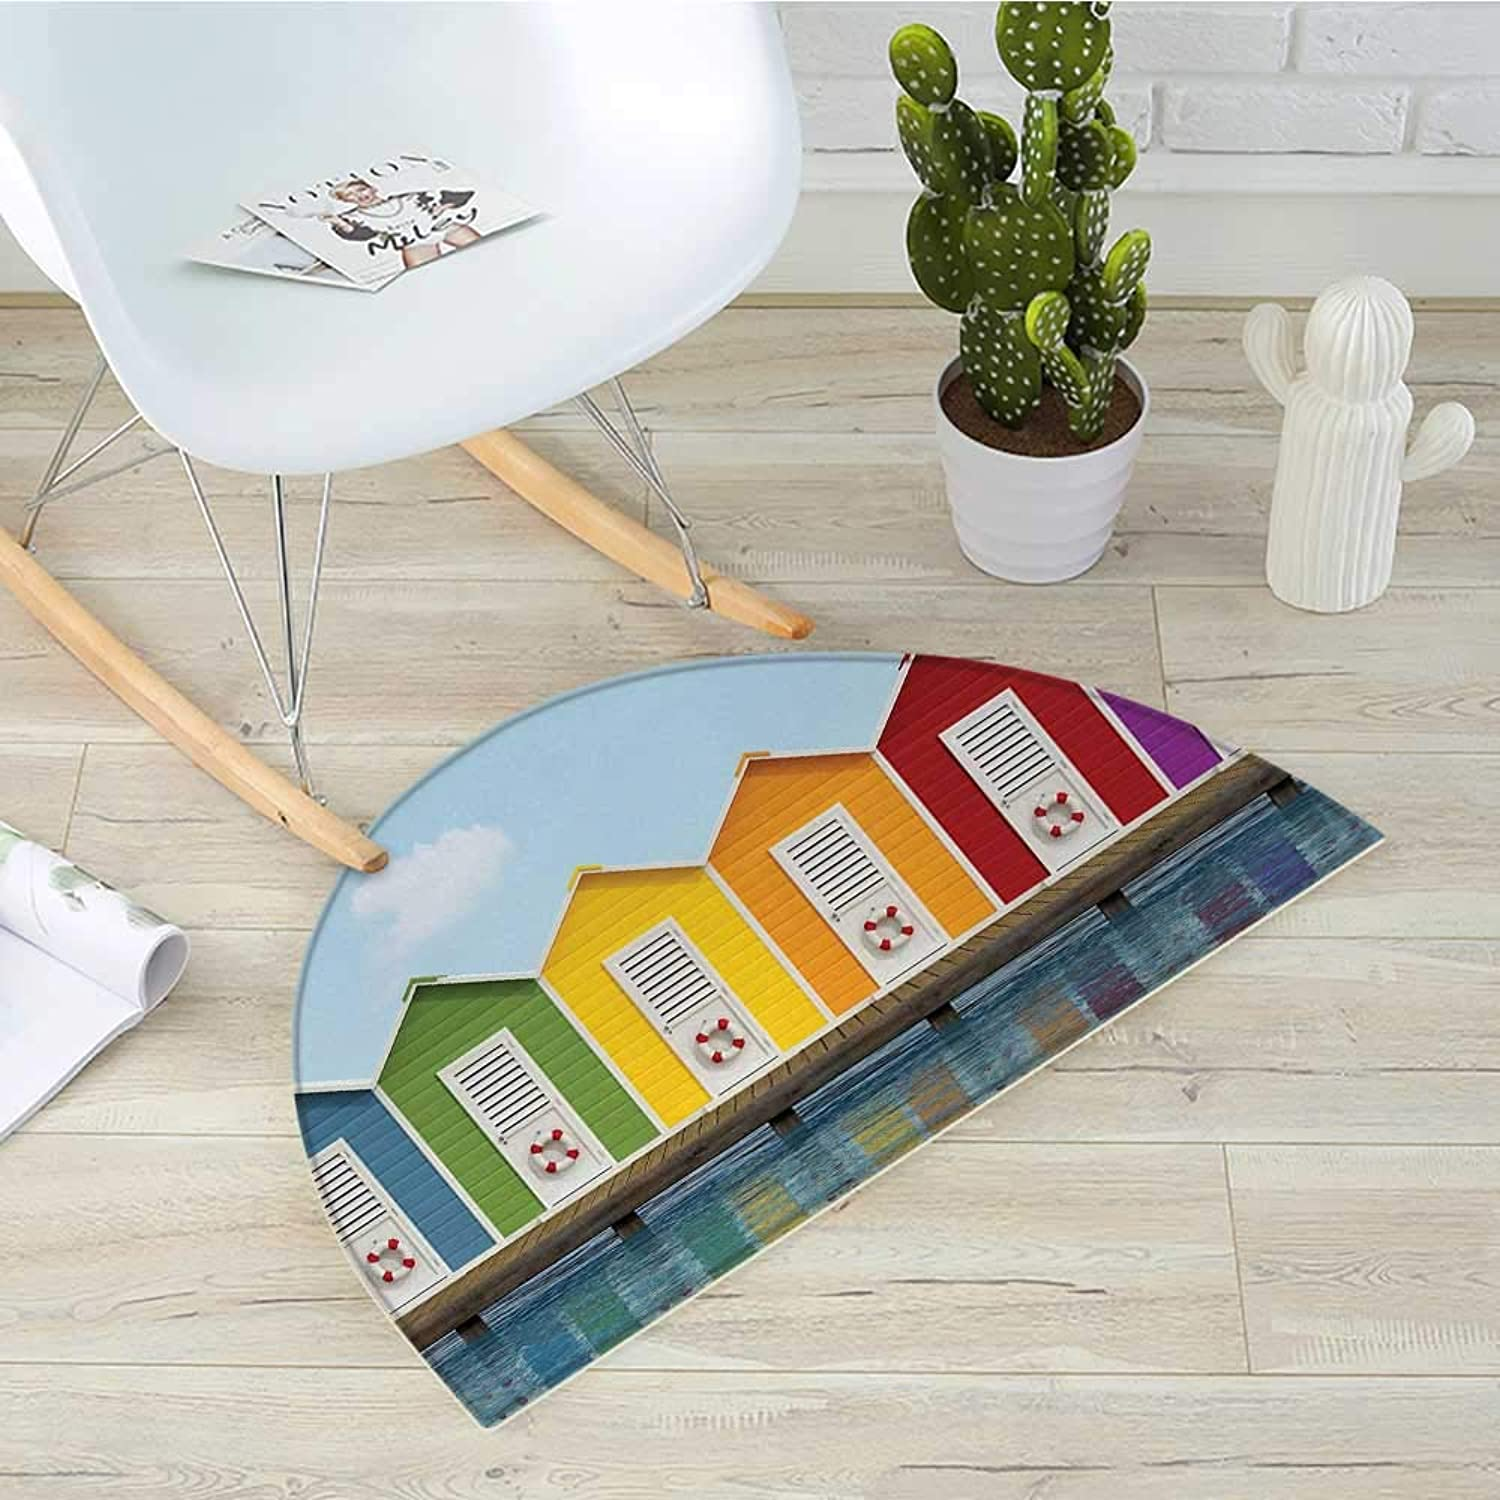 Landscape Half Round Door mats Image of colorful Beach Cabins on an Old Wooden Pier by Sea Summer Beach House Bathroom Mat H 31.5  xD 47.2  Multicolor